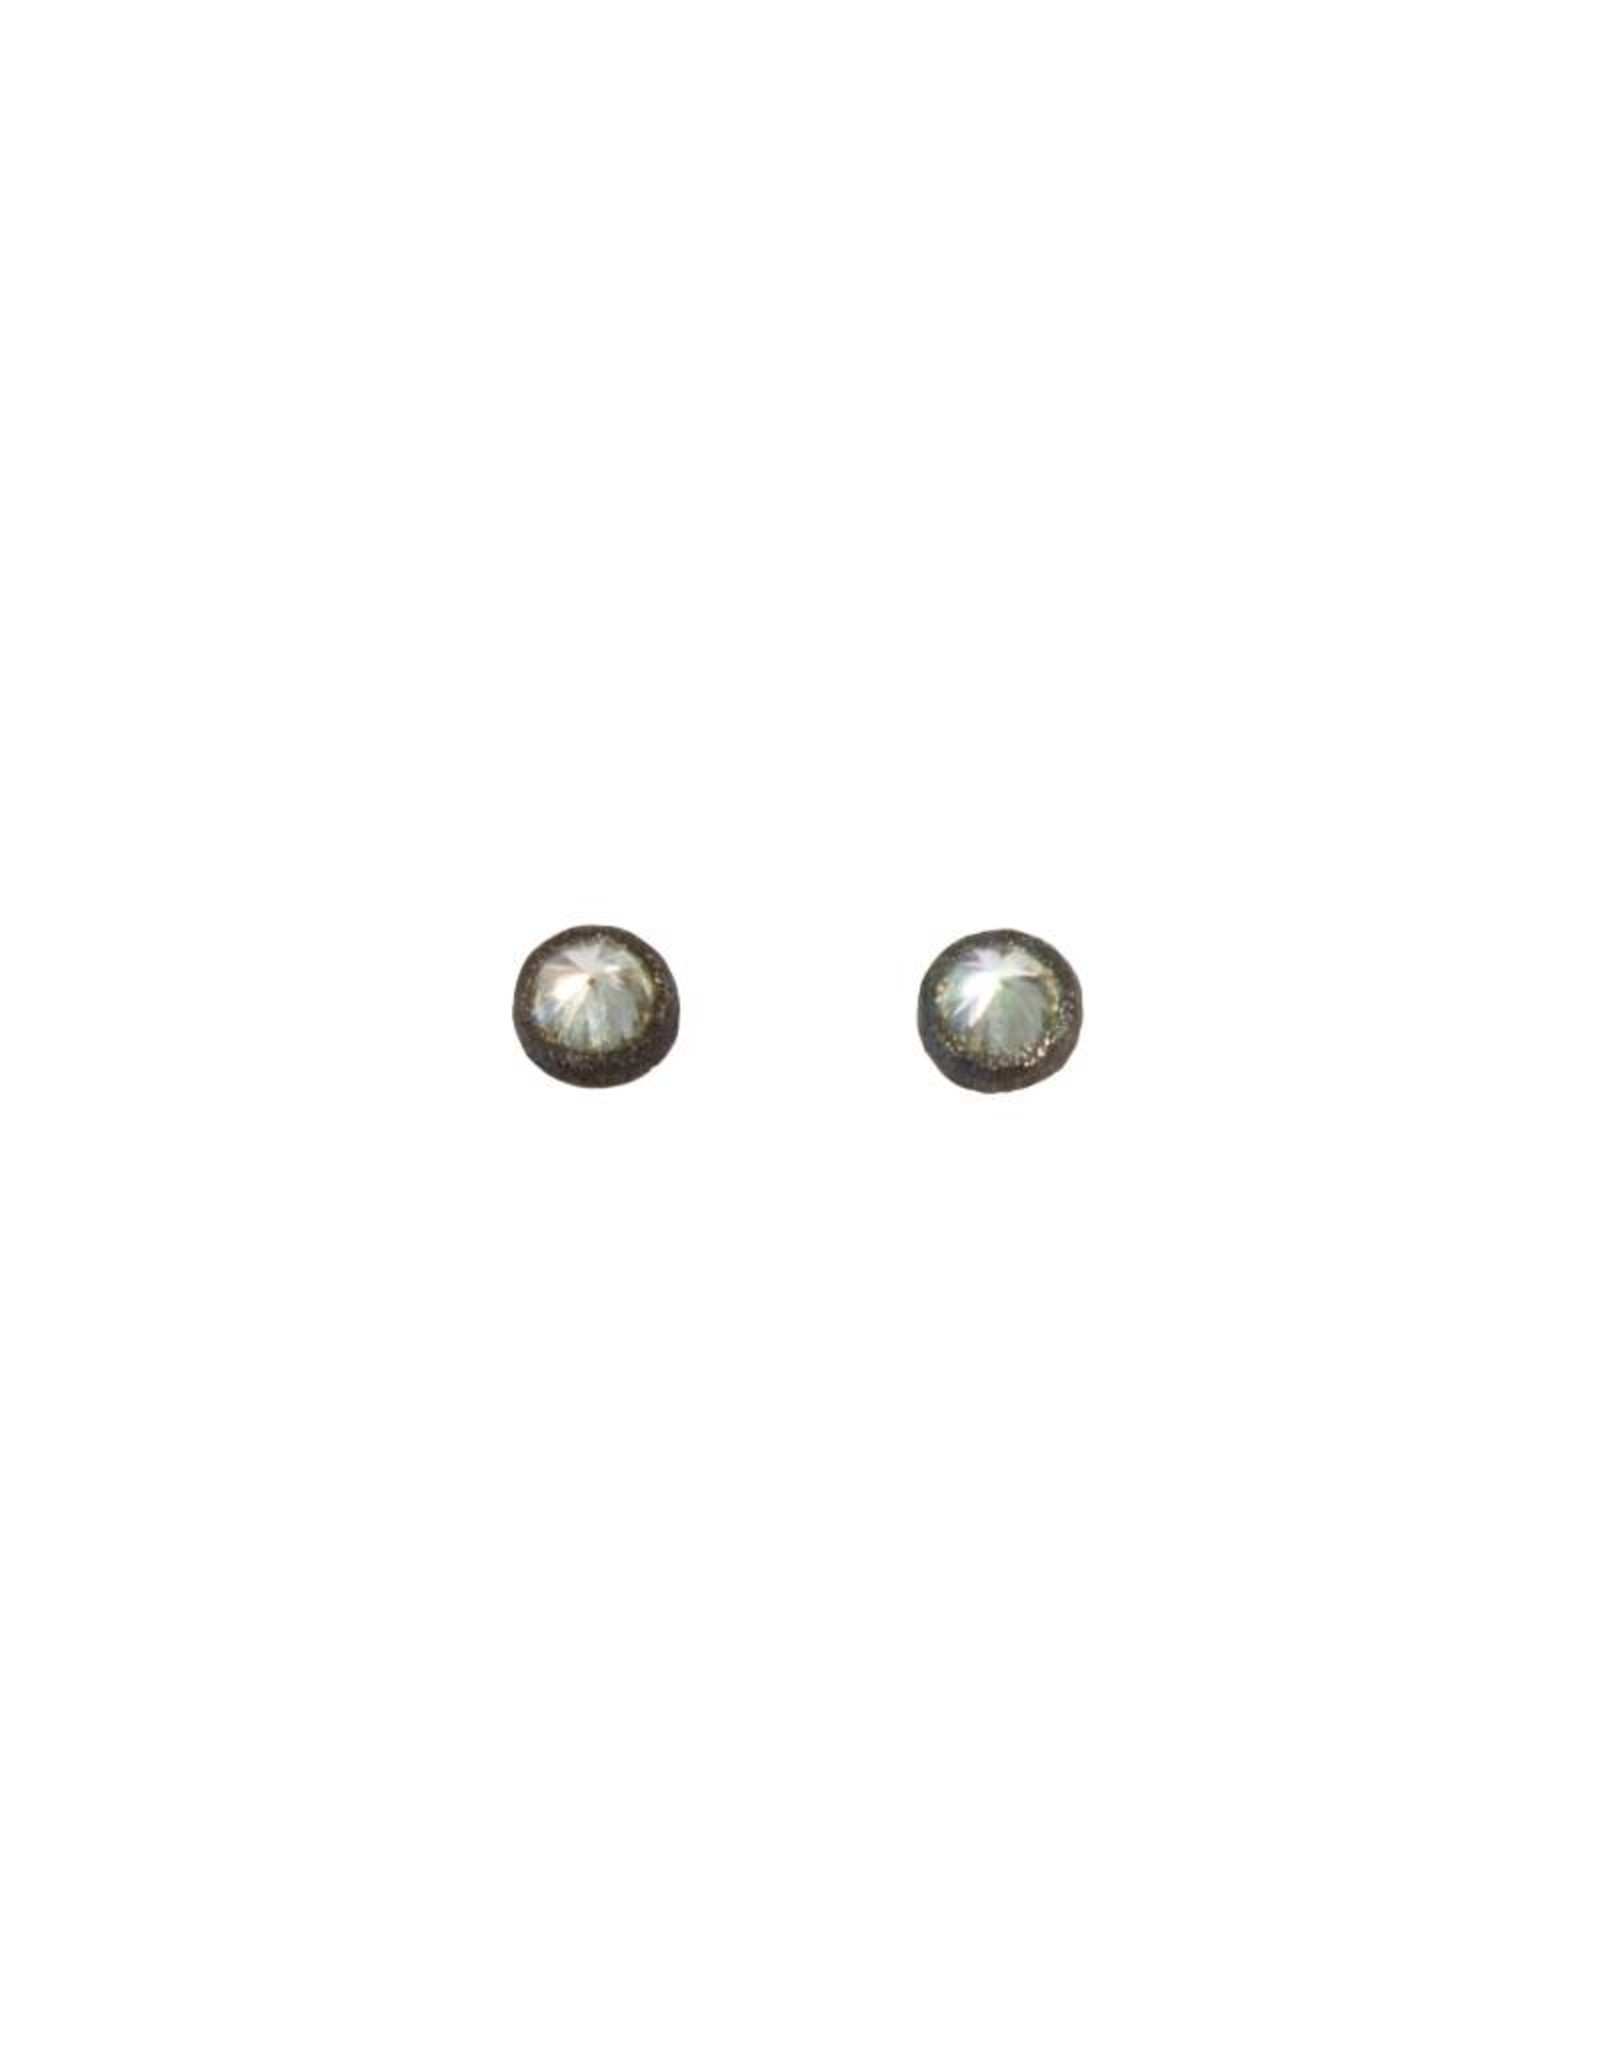 TAP by Todd Pownell Inverted Single Diamond Studs - Darkened White Gold